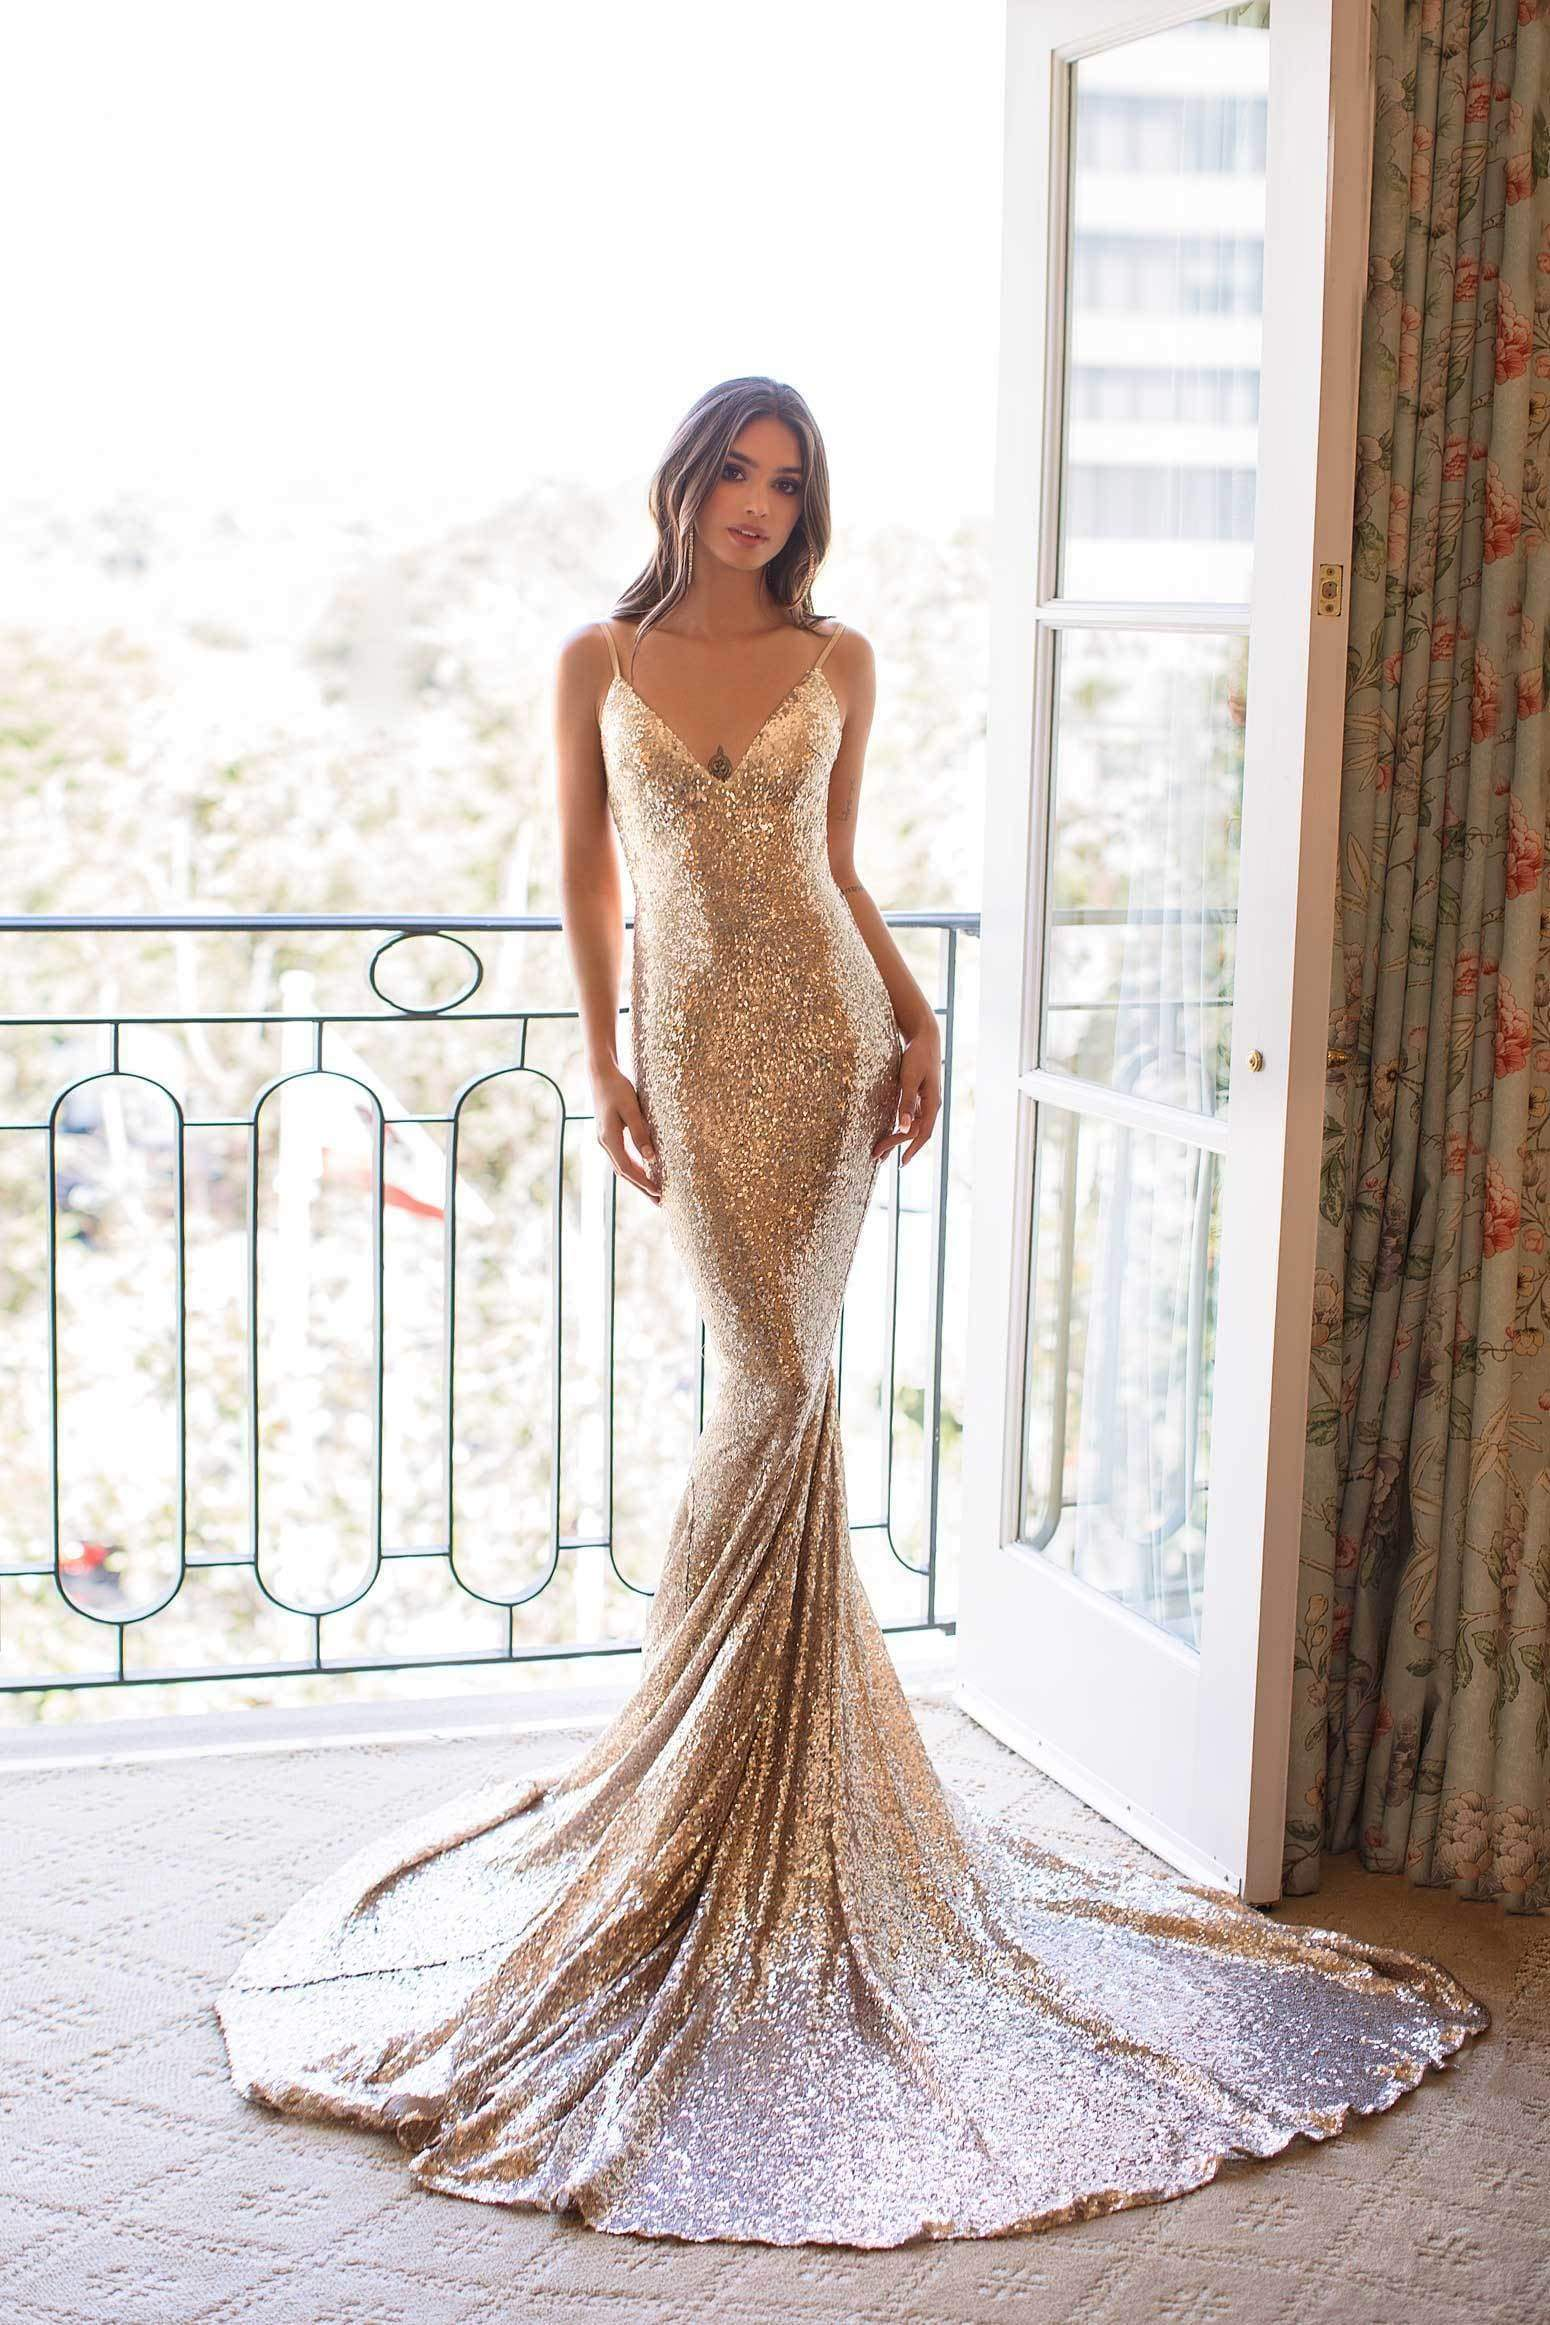 Yassmine Luxe - Copper Gold Backless Sequin Gown with Mermaid Train